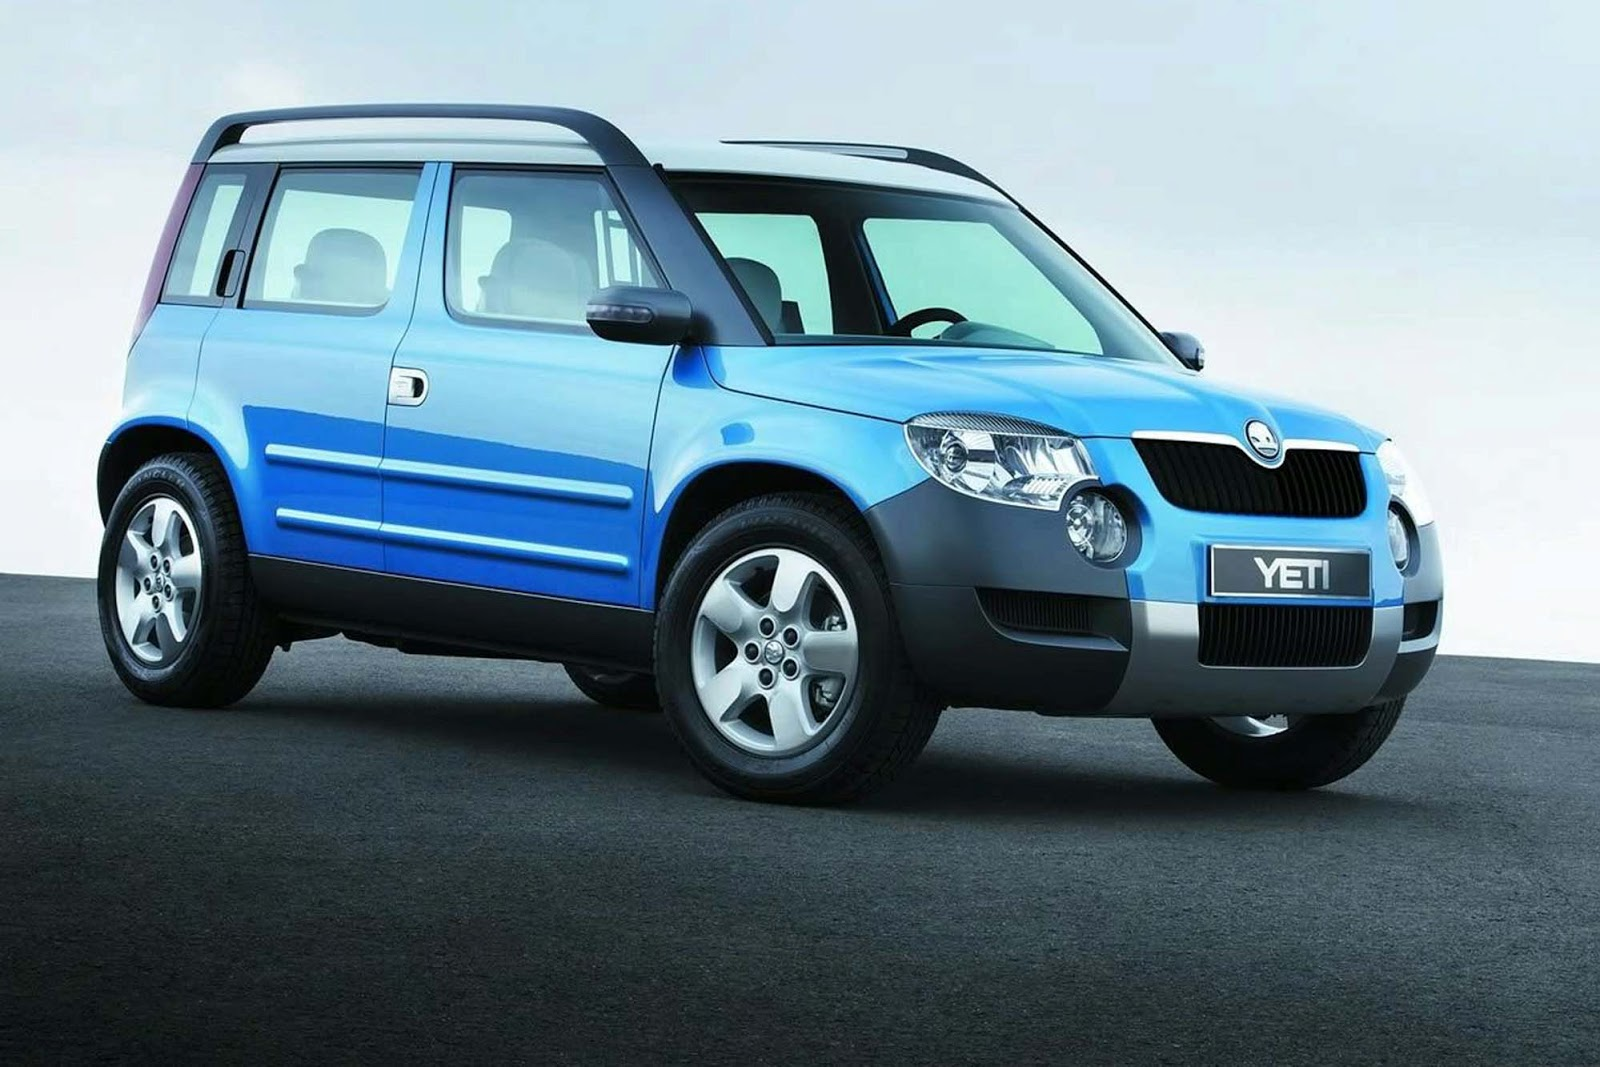 automobiles tout savoir sur les marques skoda yeti. Black Bedroom Furniture Sets. Home Design Ideas